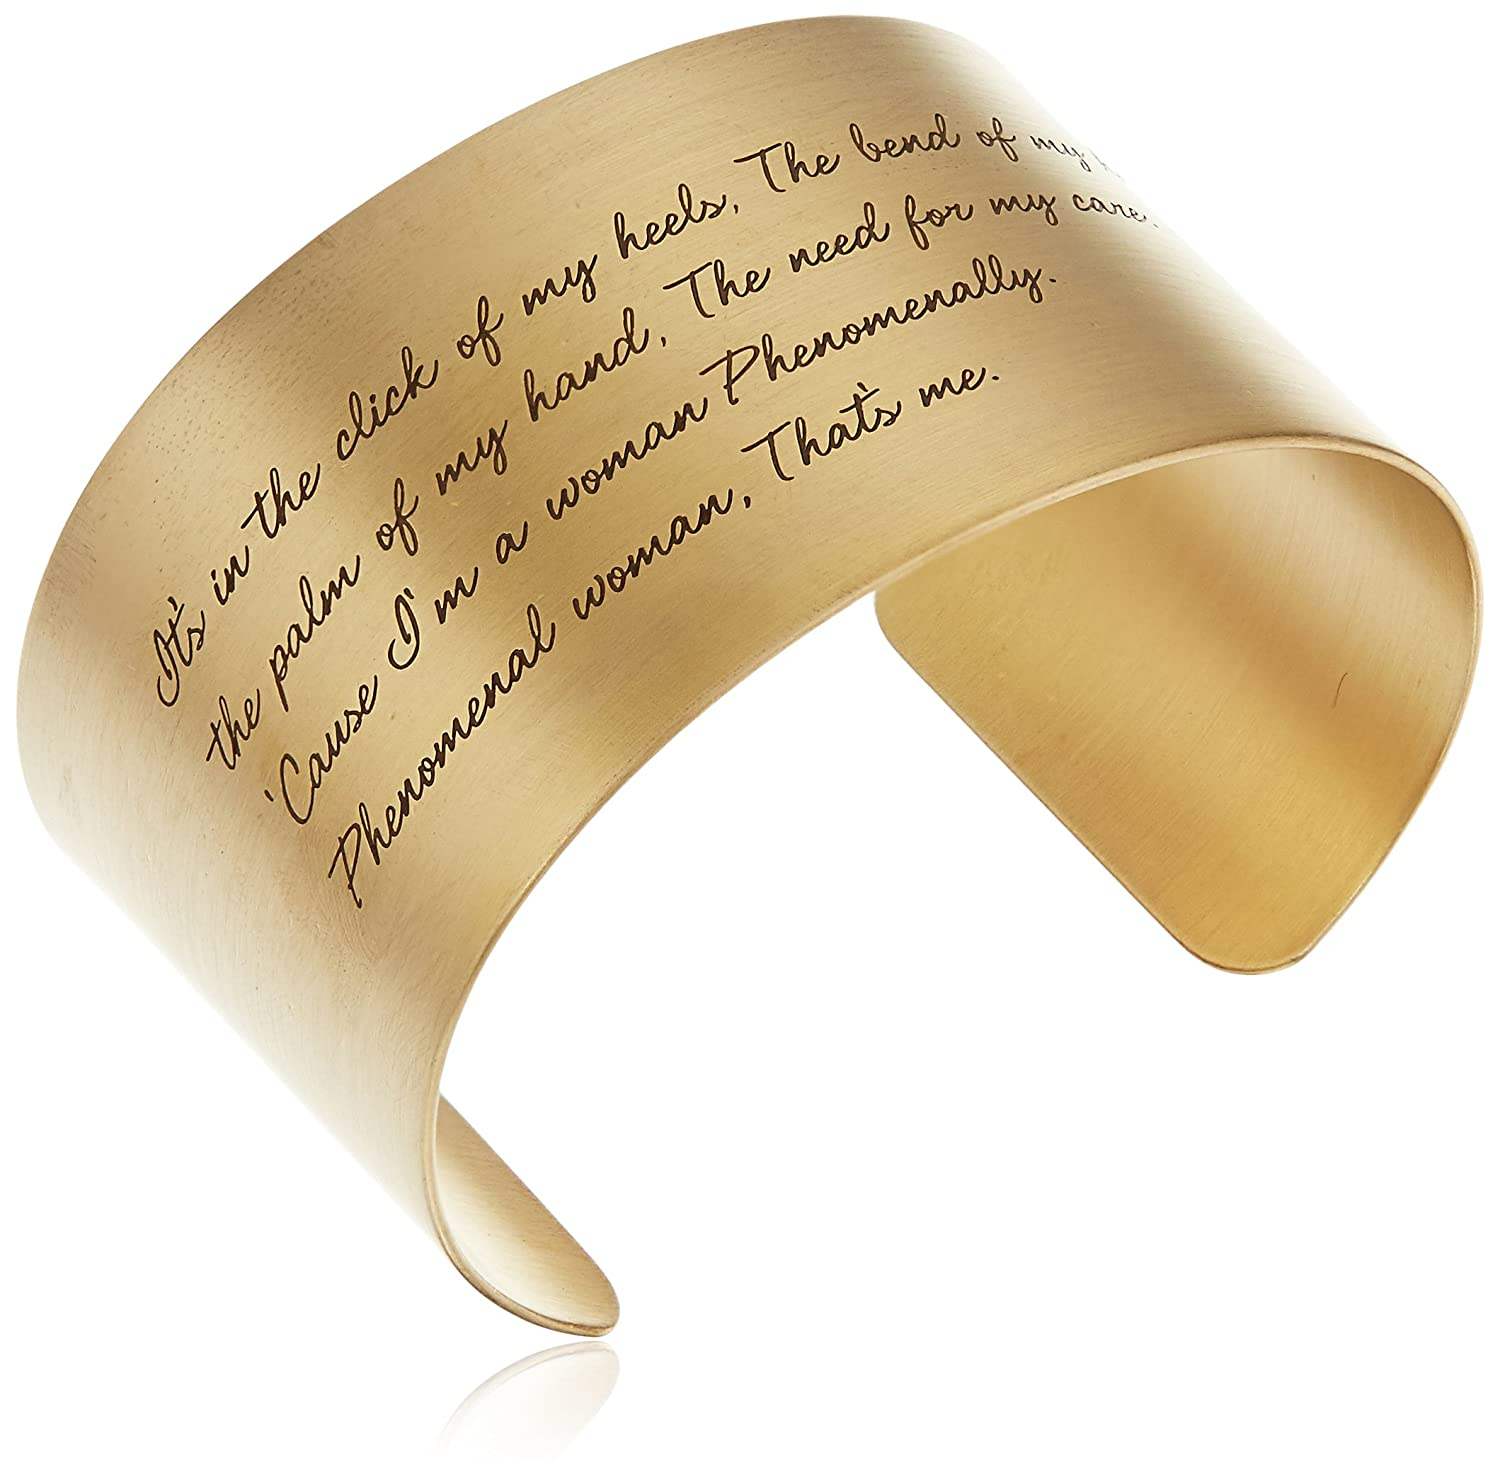 Dogeared Maya Angelou Phenomenal Woman Large Engraved Cuff Bracelet LGB022-04